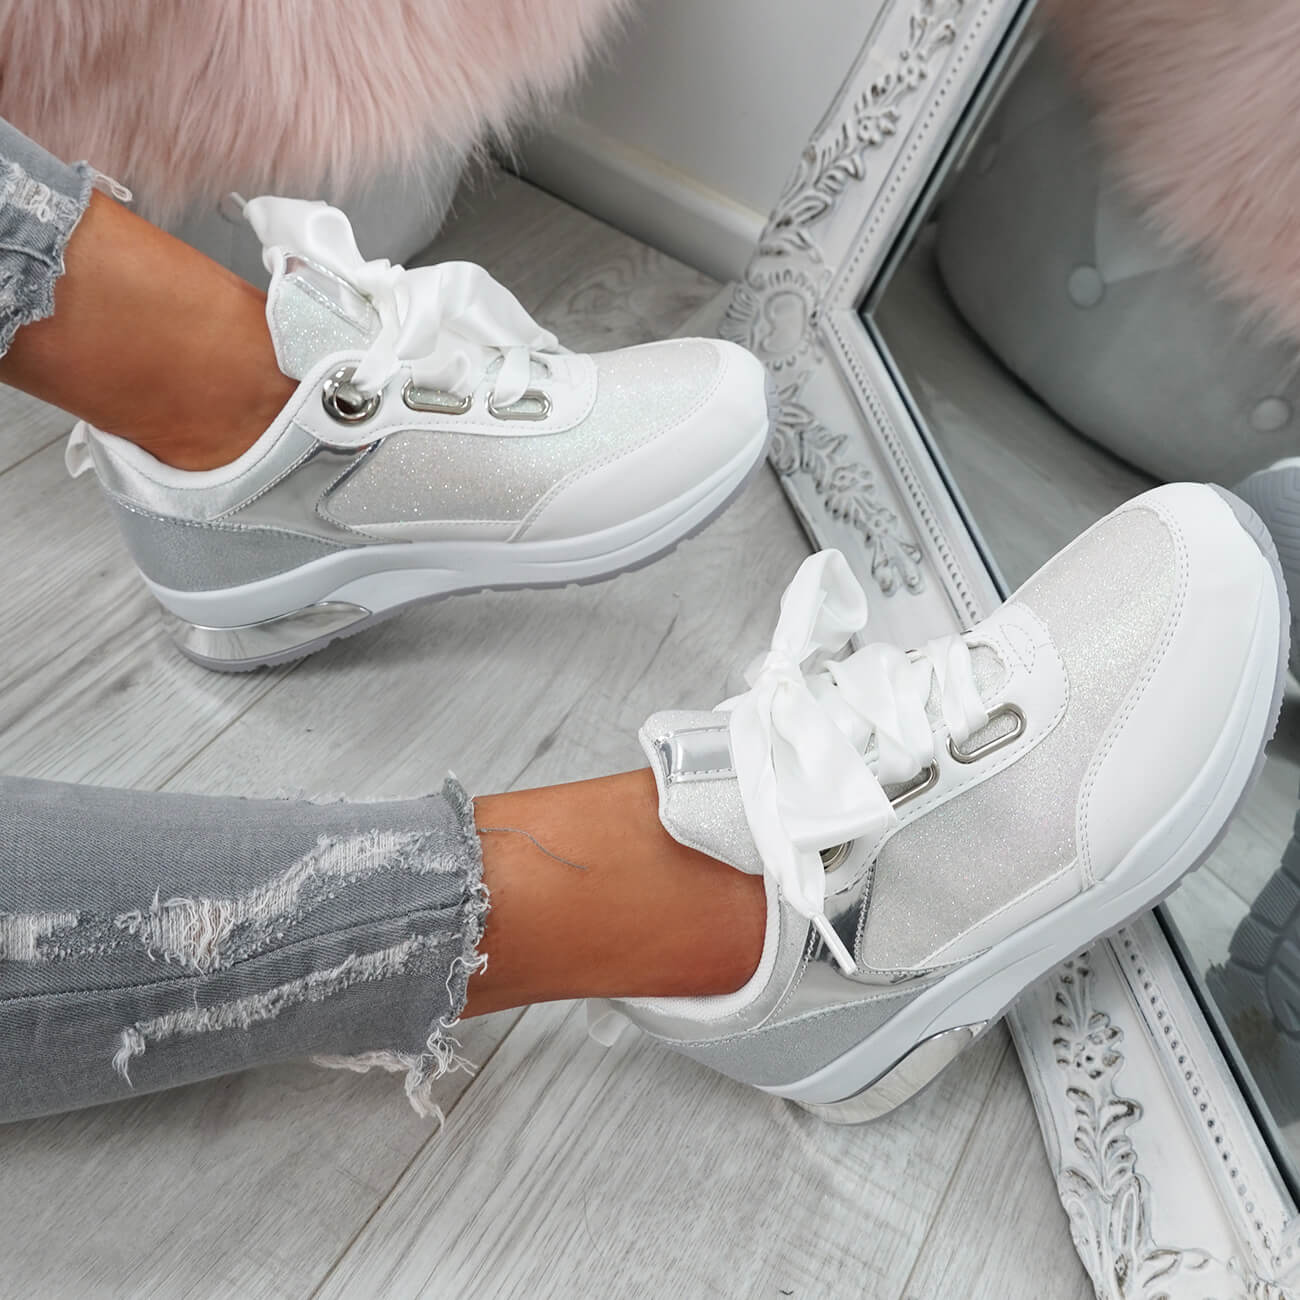 WOMENS-LADIES-RIBBON-TRAINERS-GLITTER-SPARKLE-SNEAKERS-RUNNING-FASHION-SHOES thumbnail 19